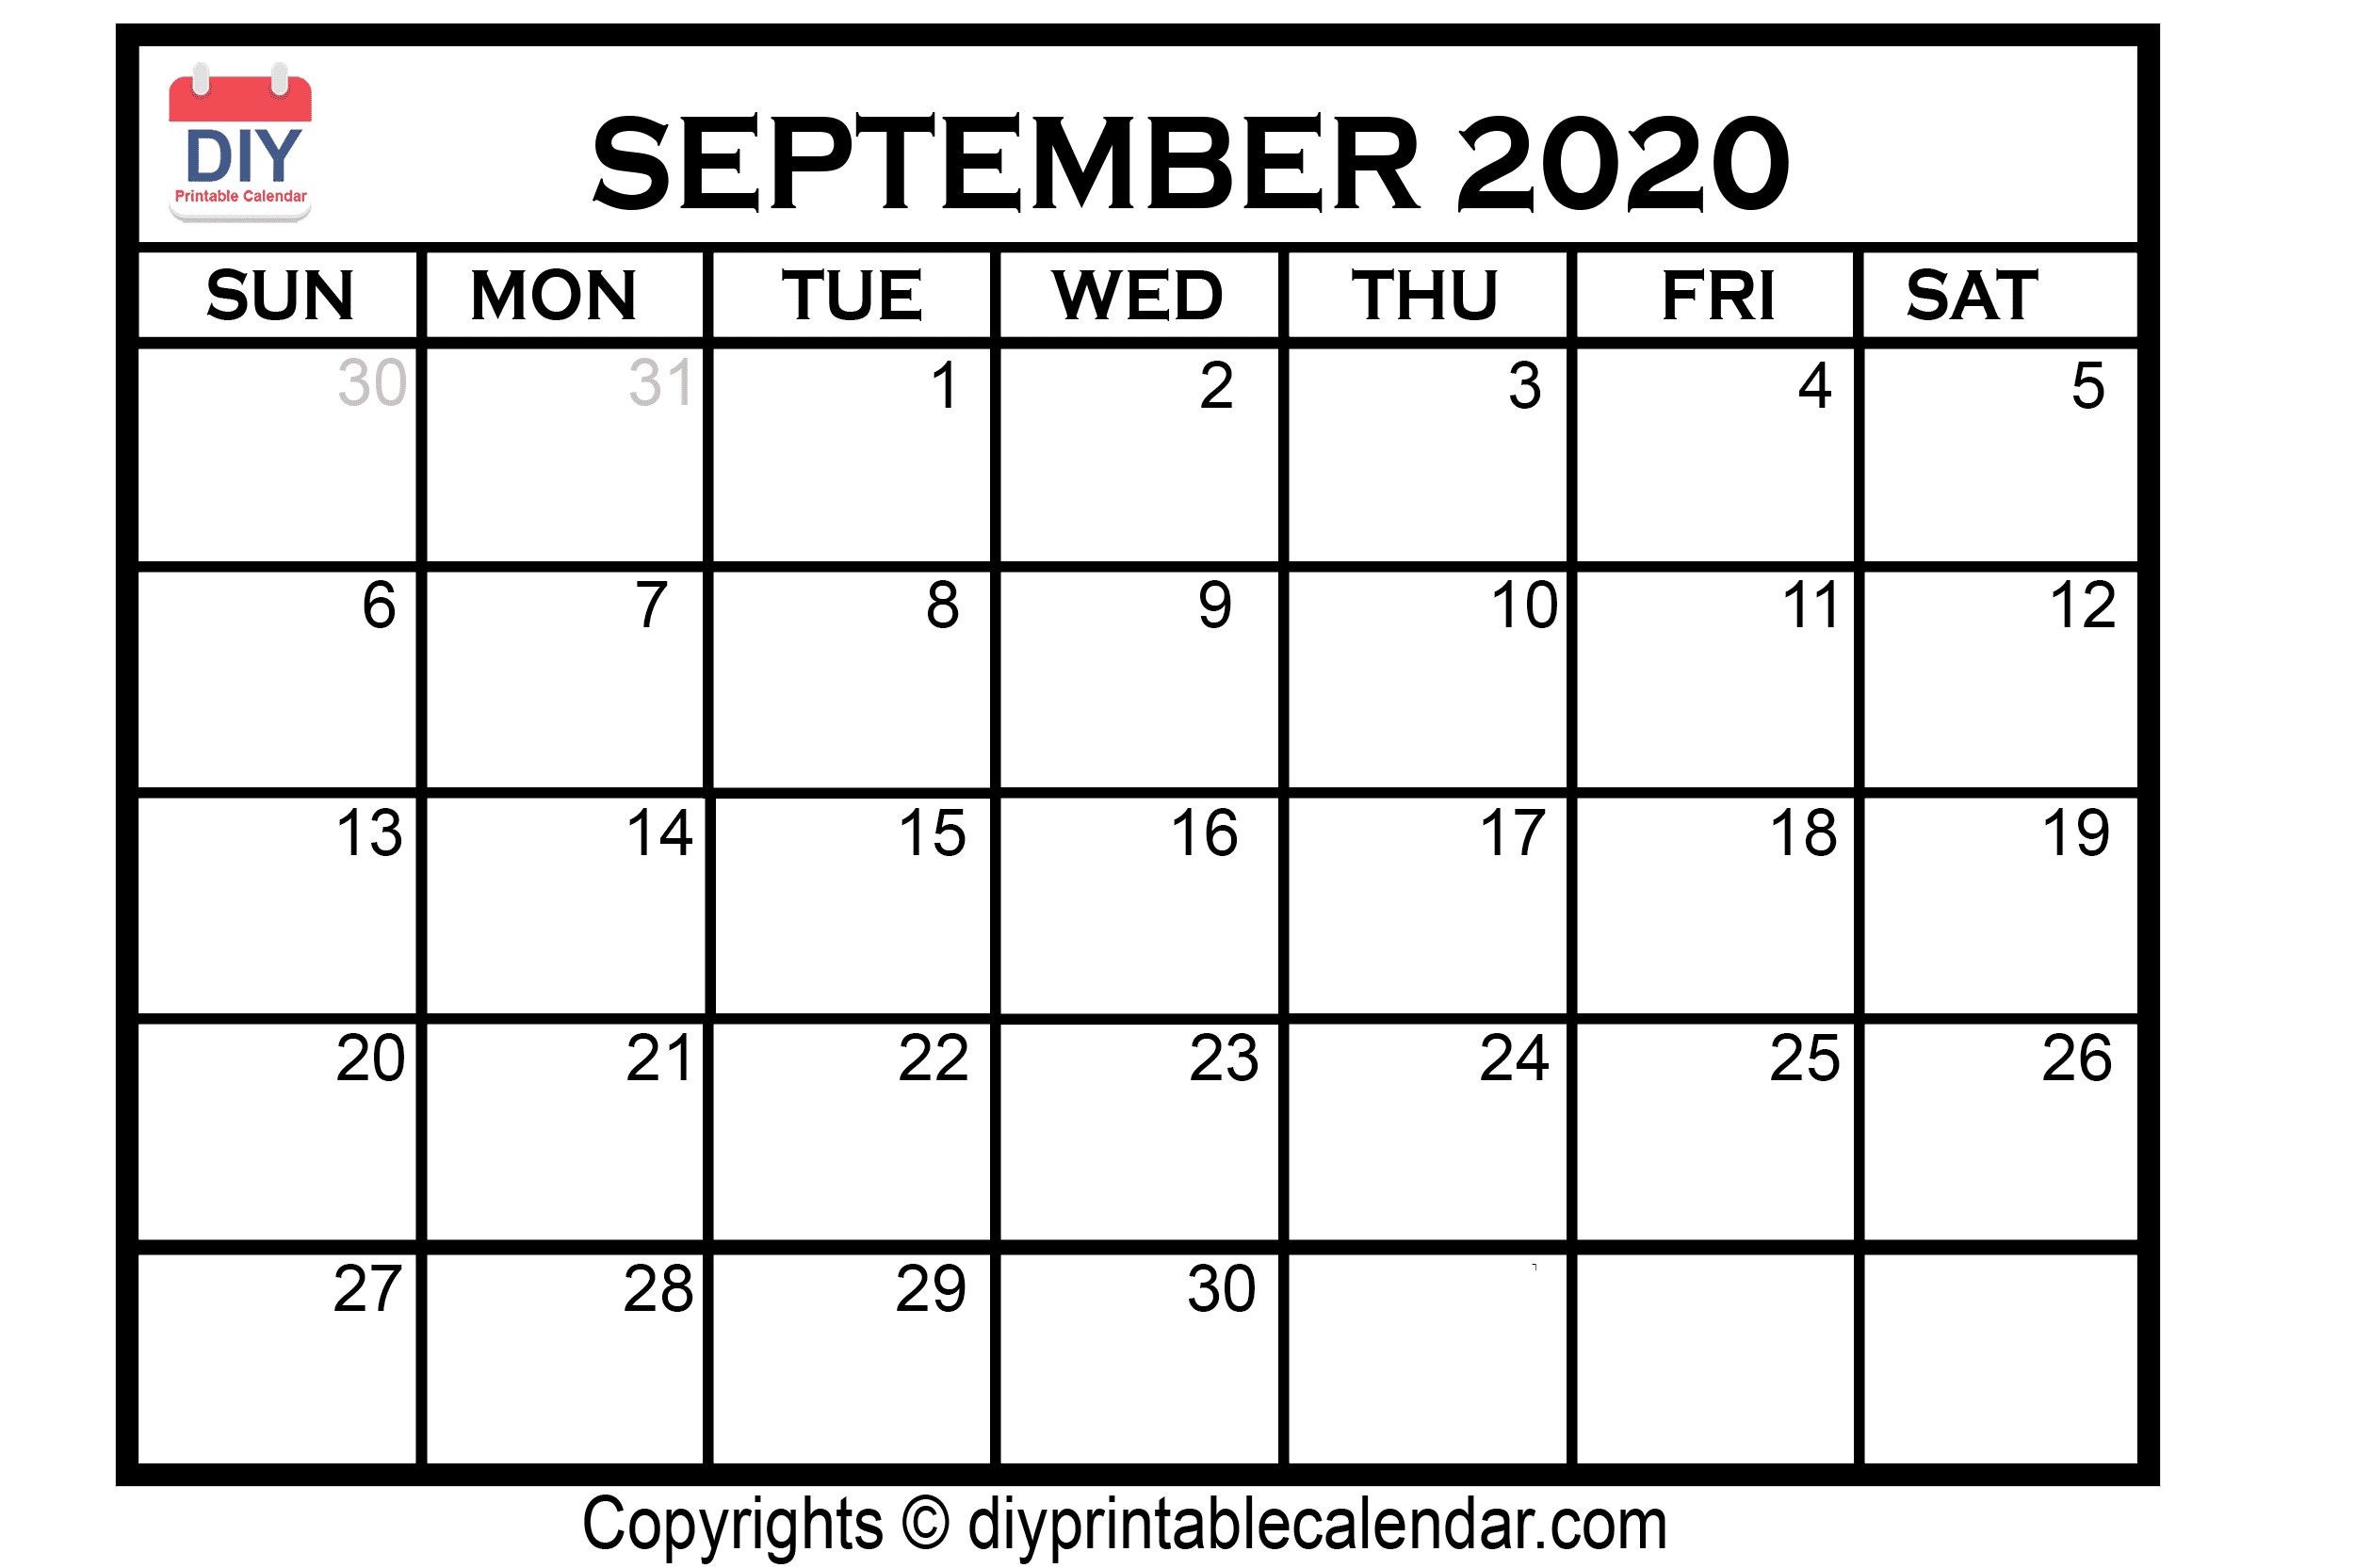 image relating to September Printable Calendar titled September 2020 Printable Calendar Template